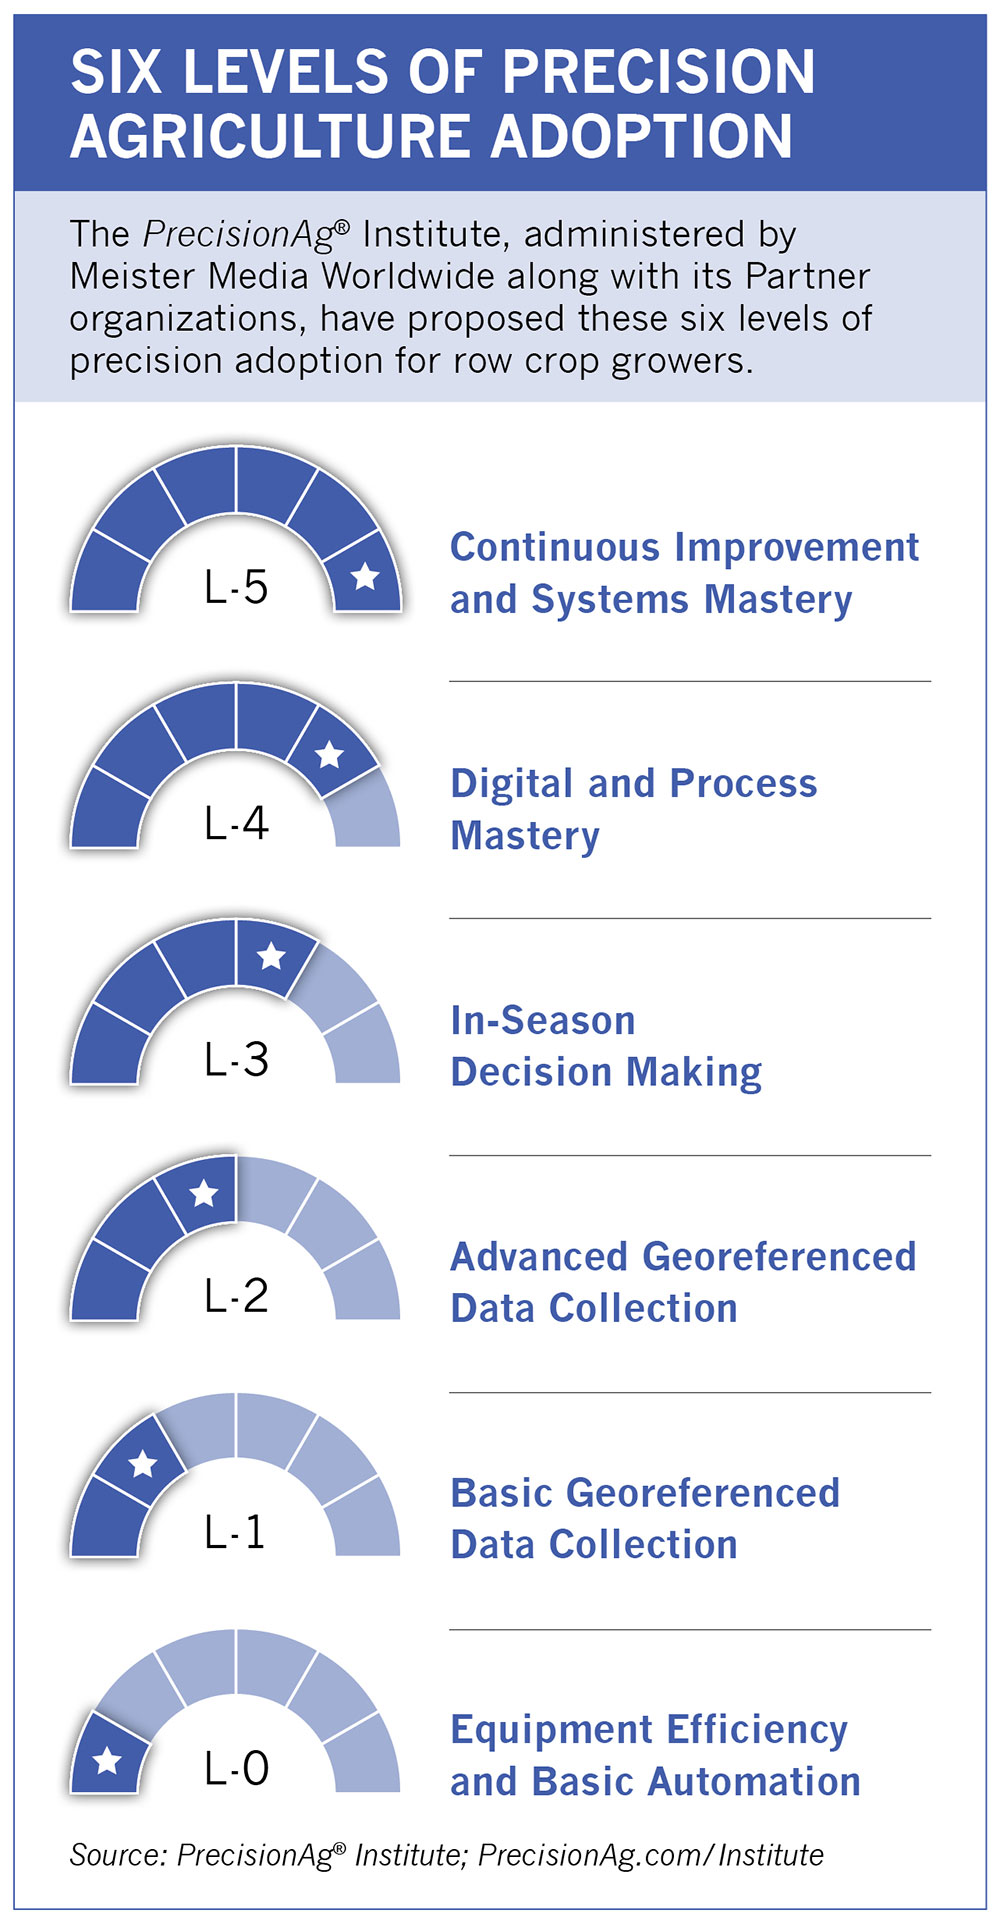 Six Levels of Precision Agriculture Adoption